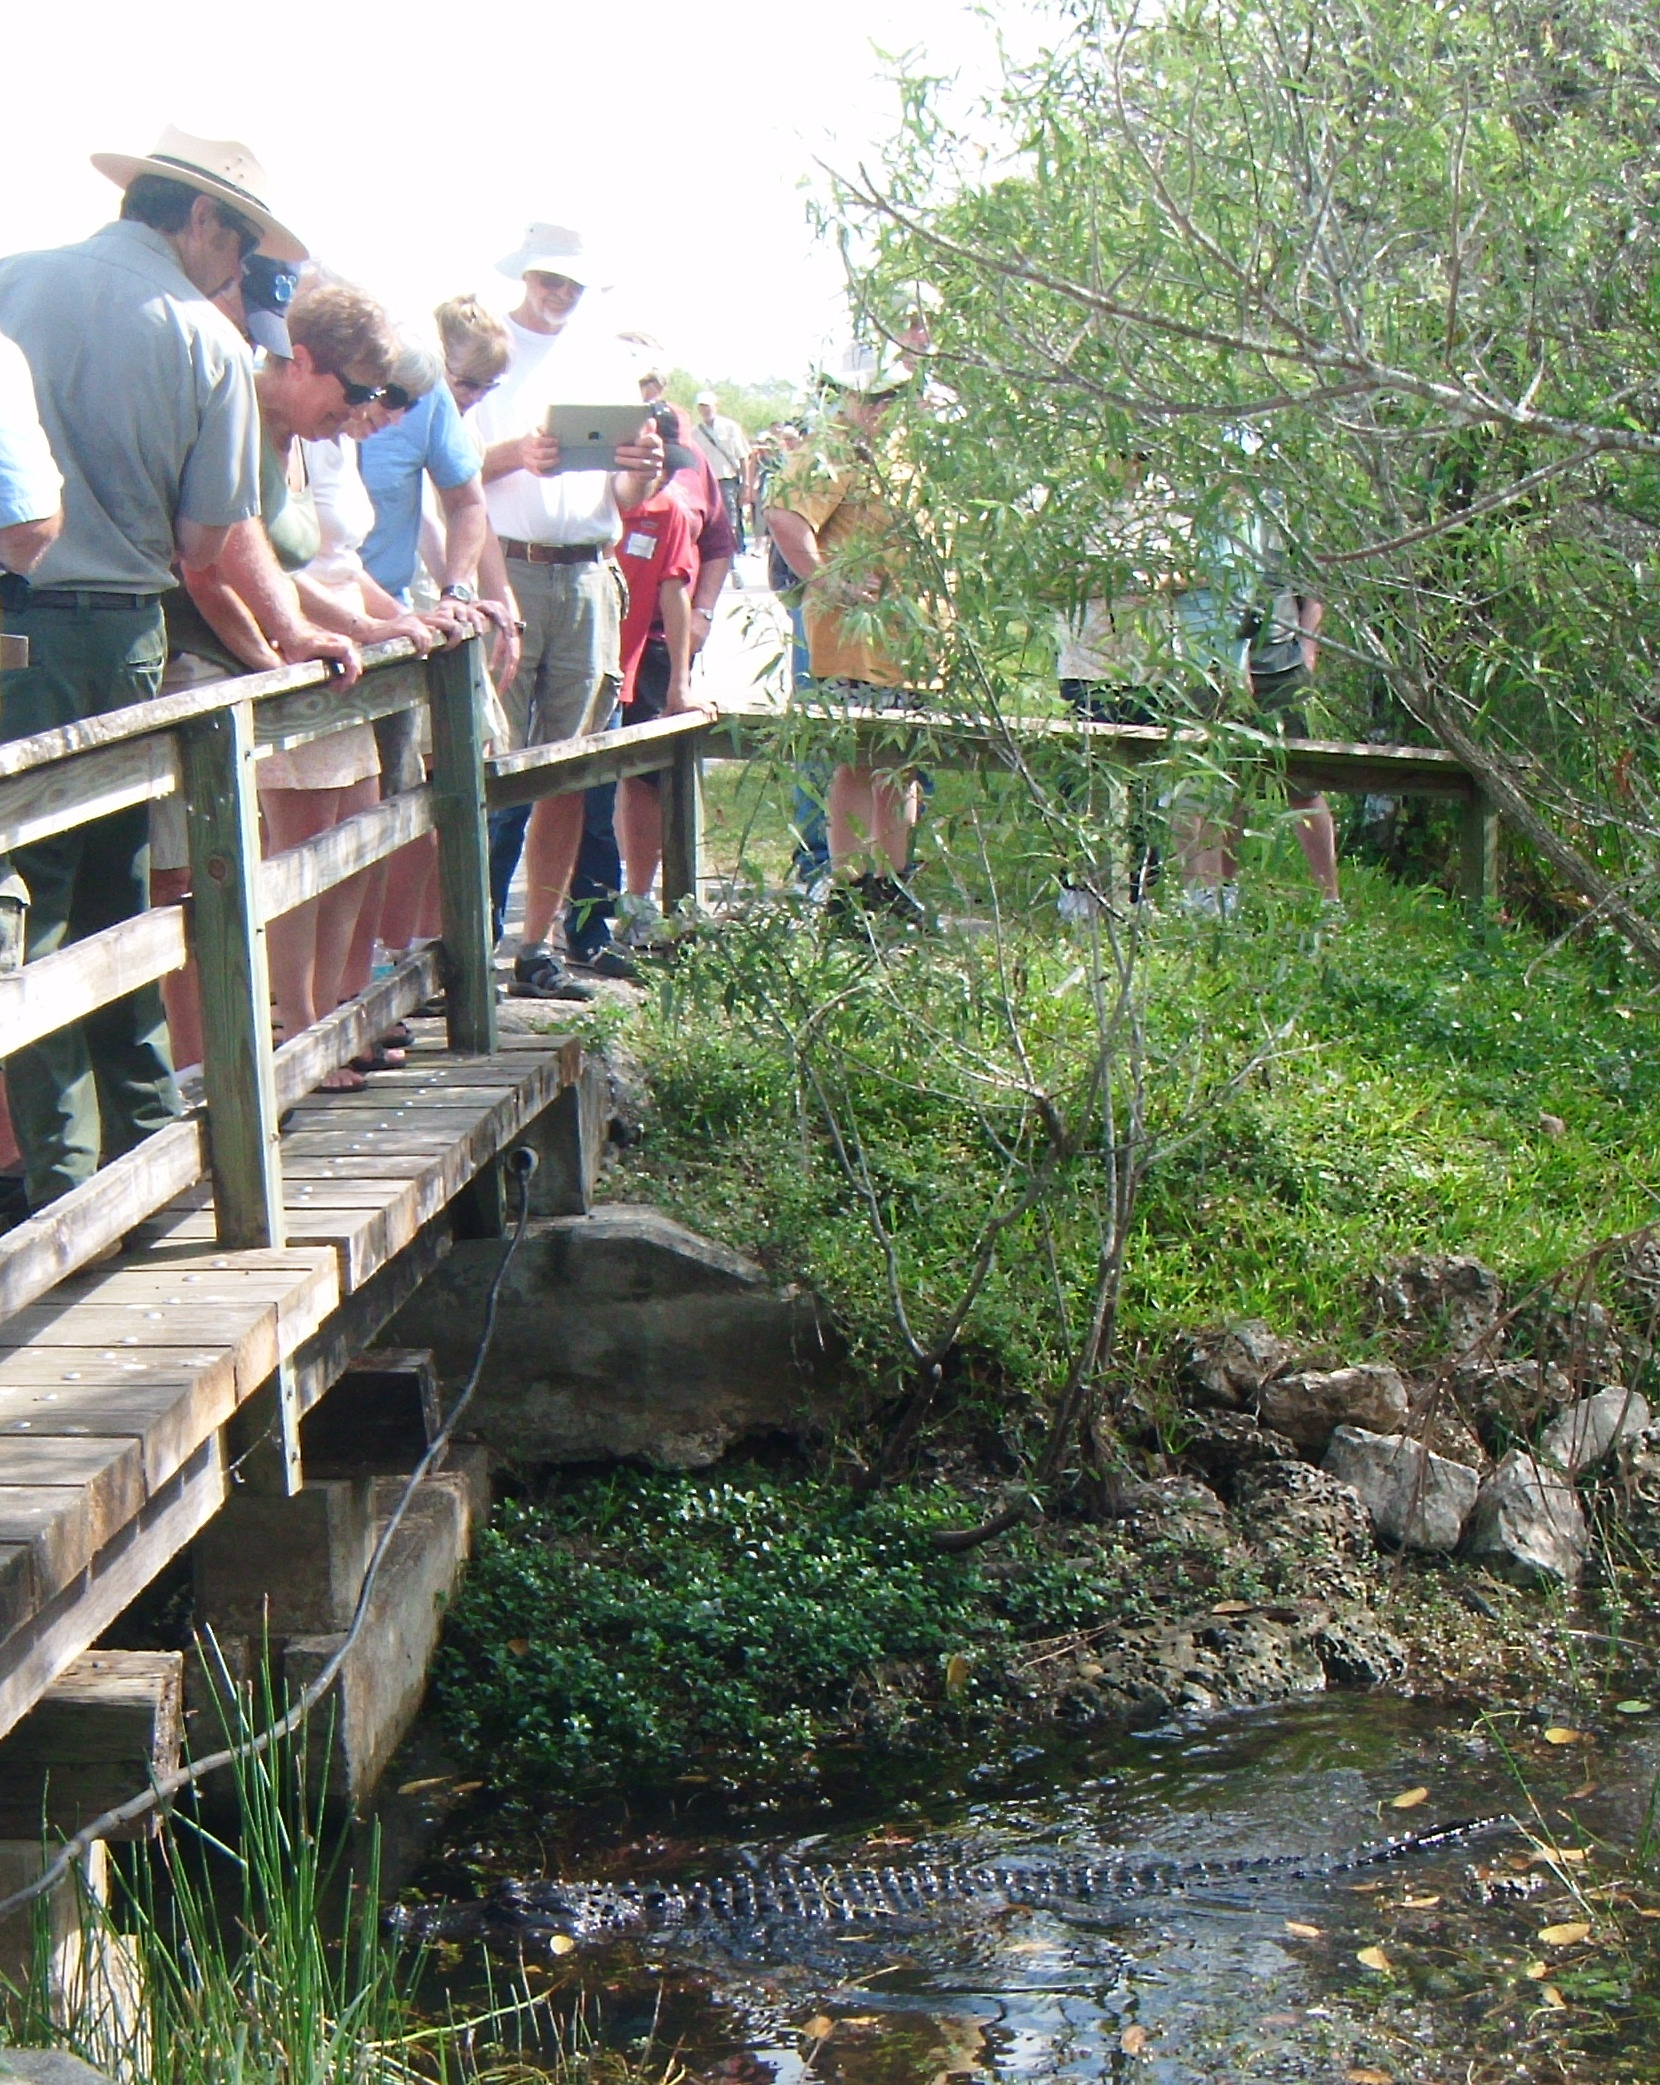 Visitors watch wildlife at the Everglades